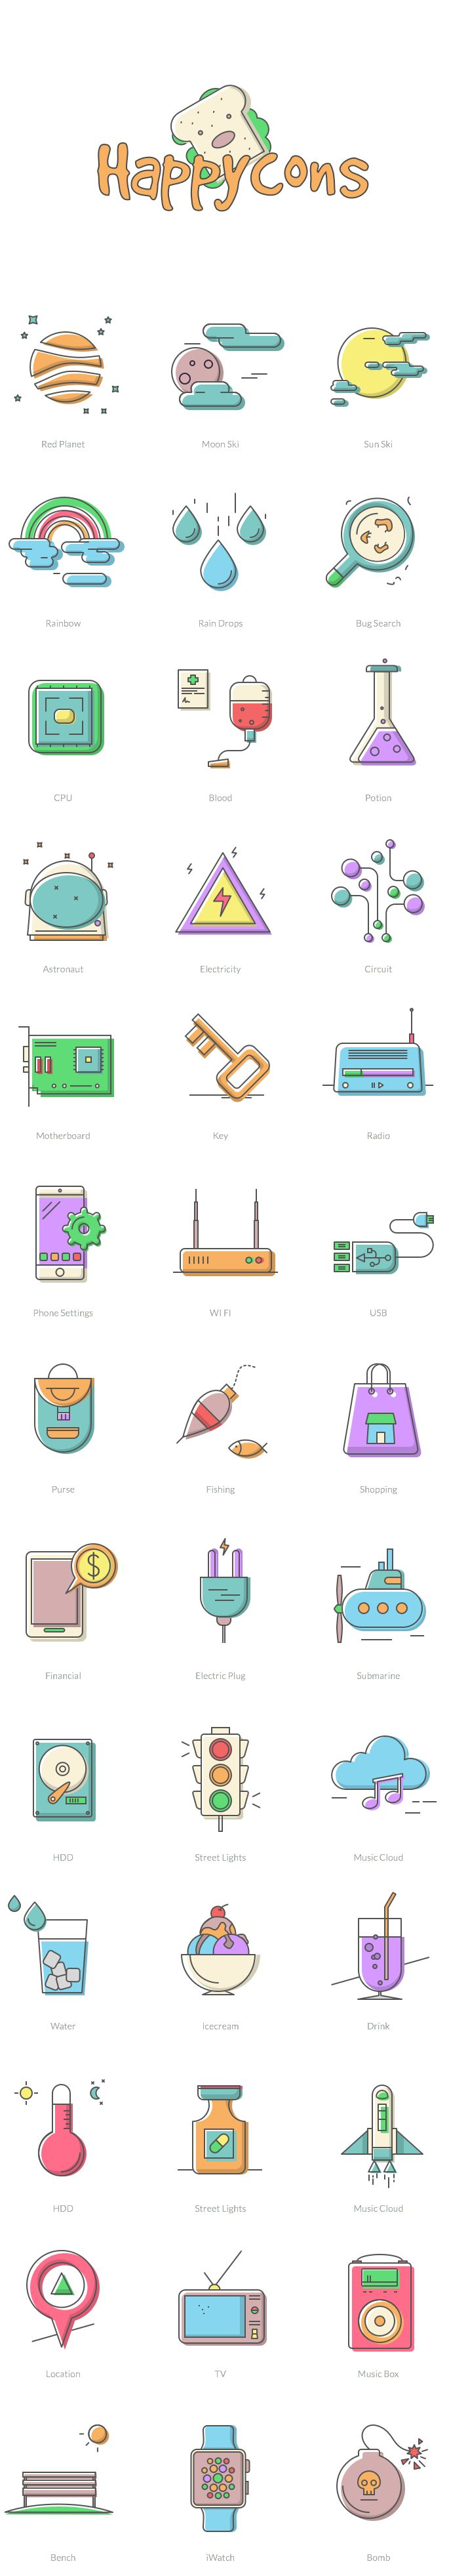 Free Download : Happycons – 40 happy and unique icons (AI, Sketch, PNG, SVG, EPS)